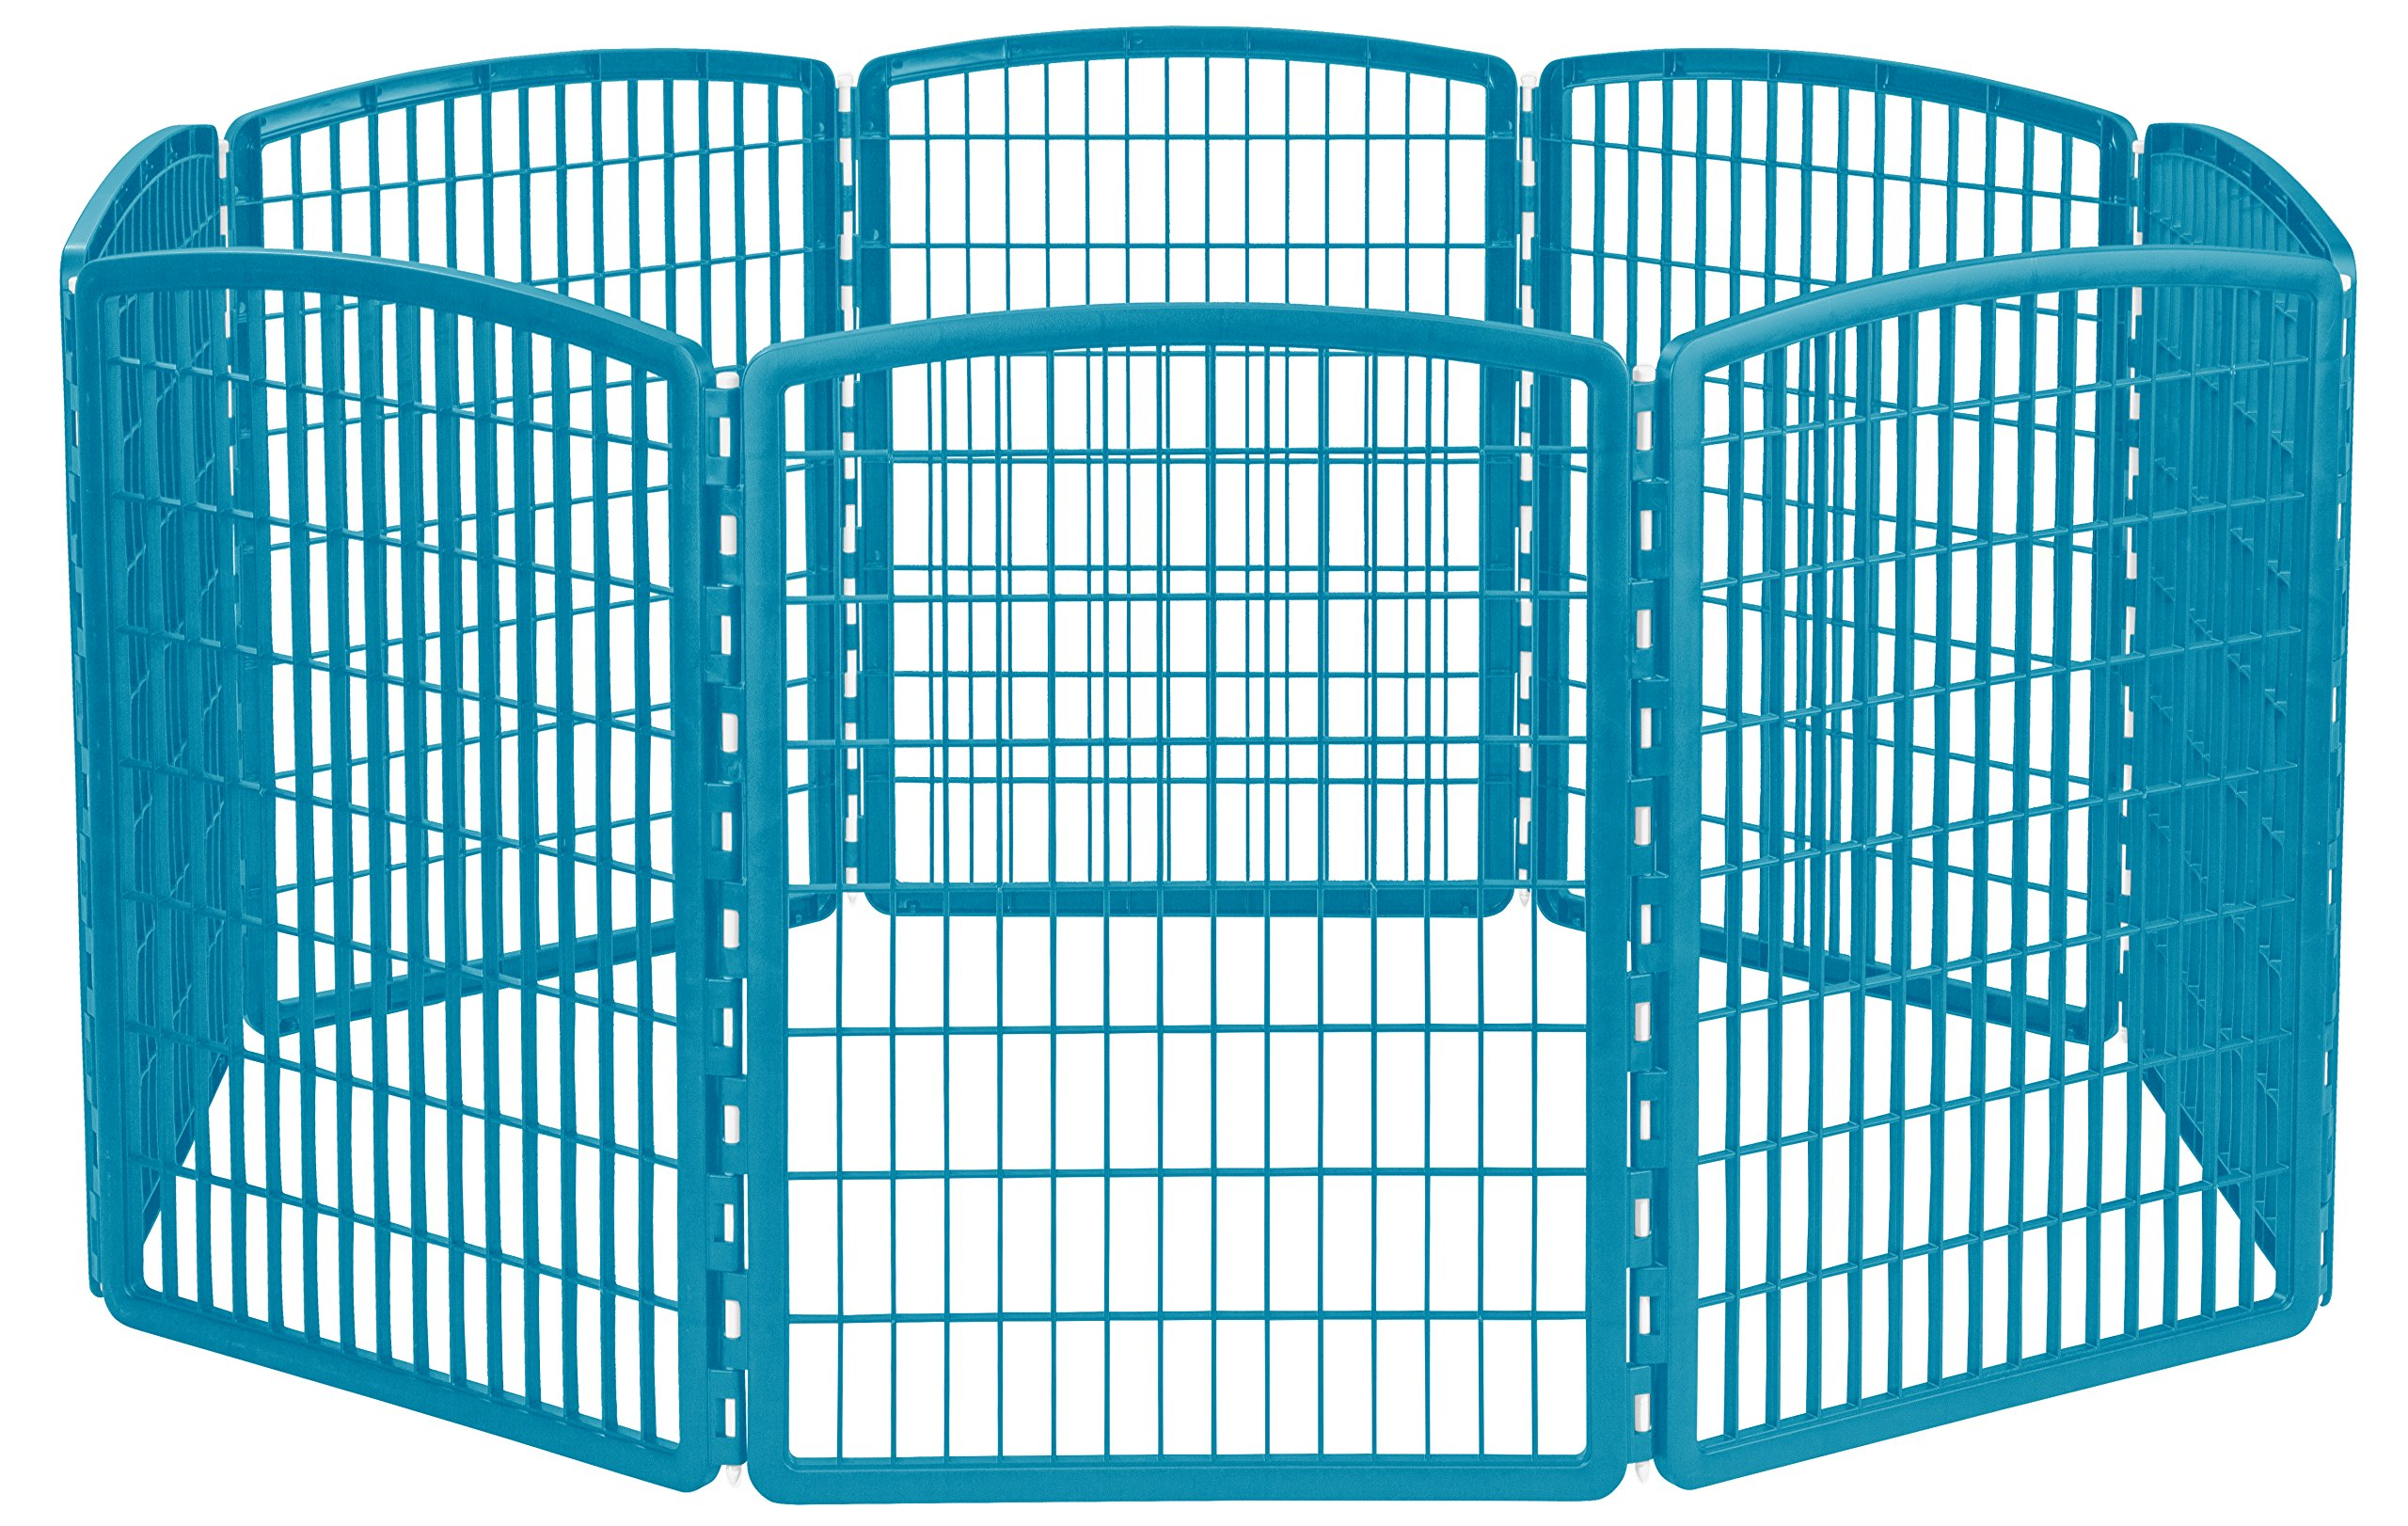 IRIS 34'' Exercise 8-Panel Pet Playpen without Door, Blue Moon by IRIS USA, Inc.